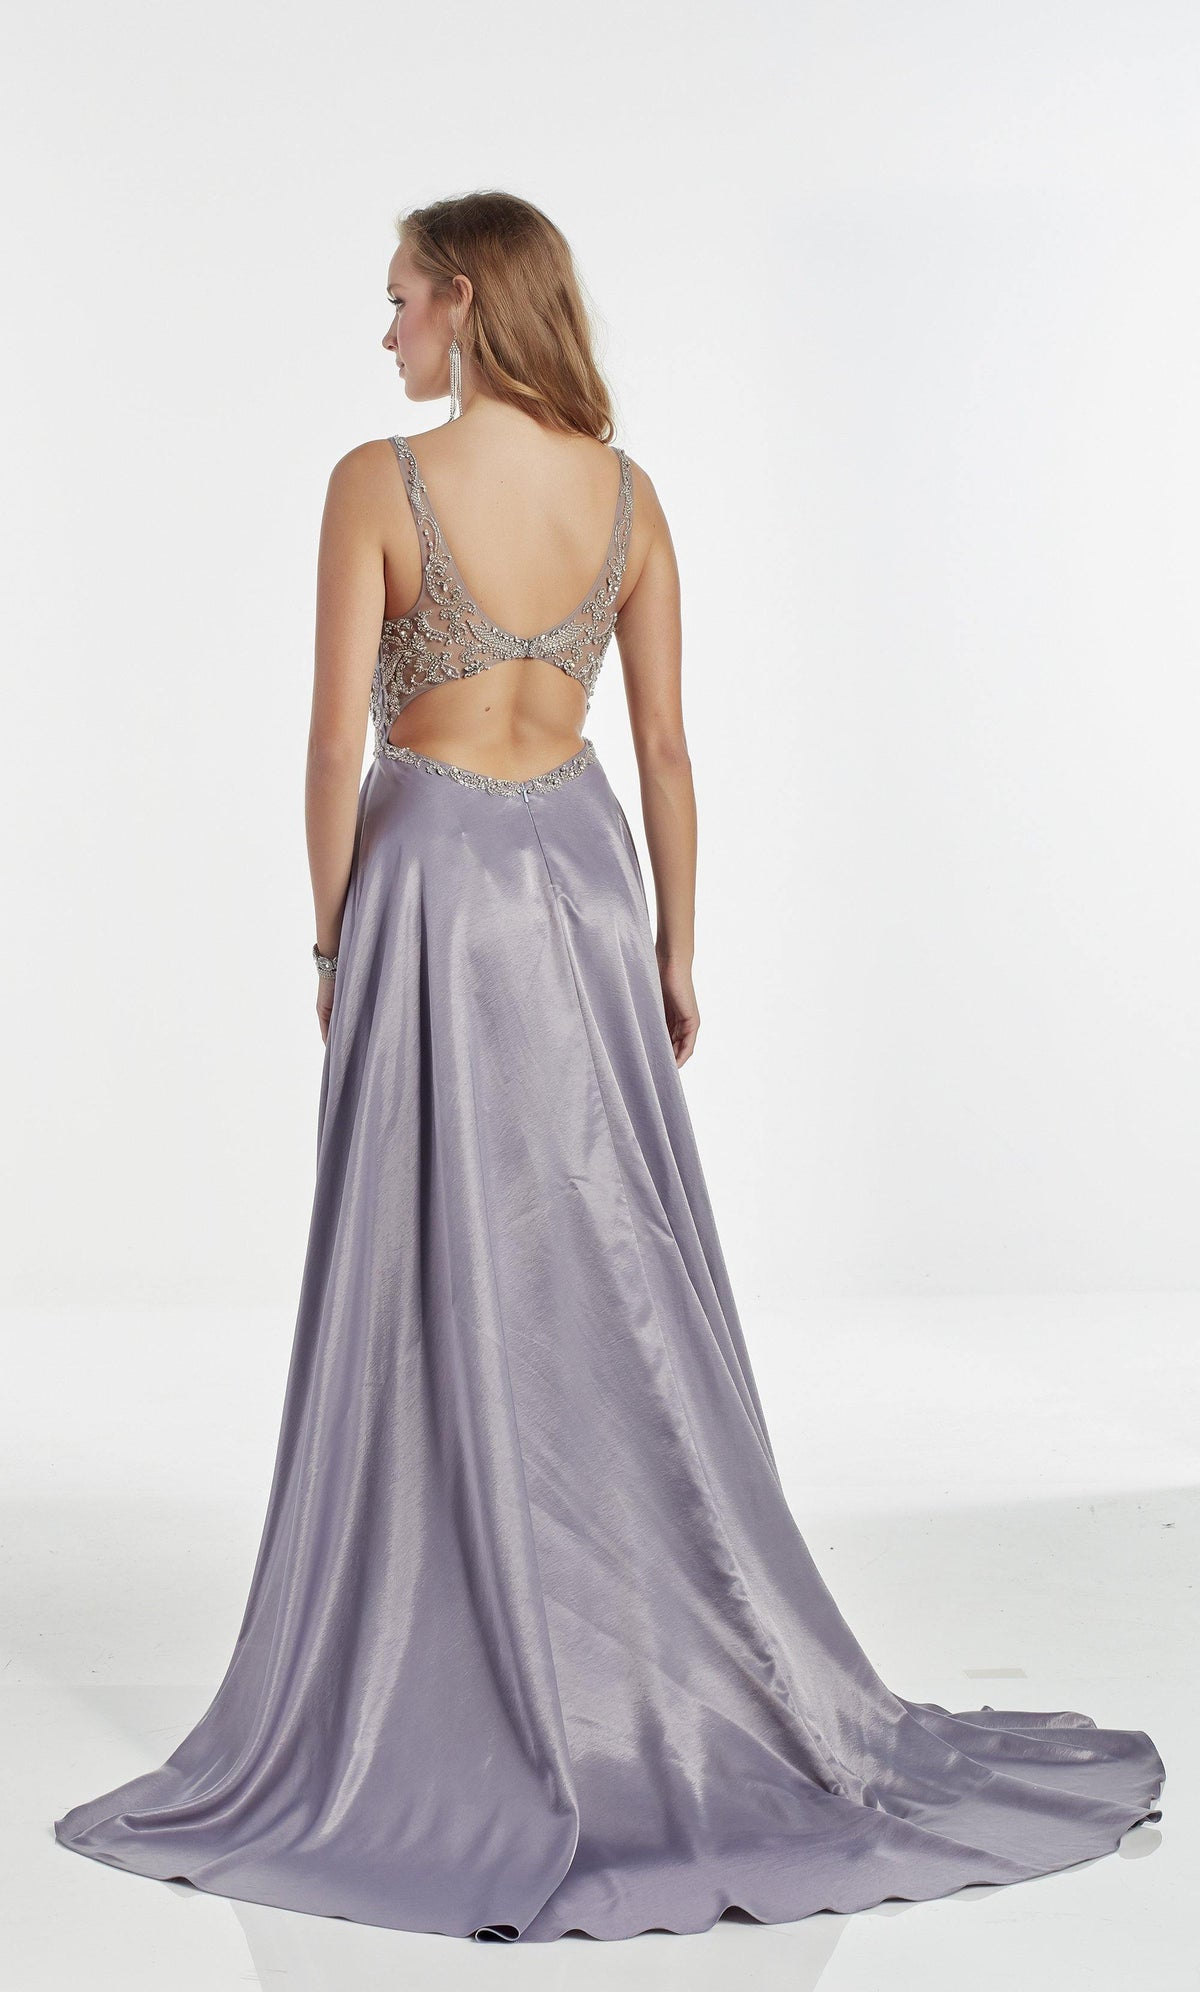 Lilac-Grey flowy prom dress with a keyhole back and train